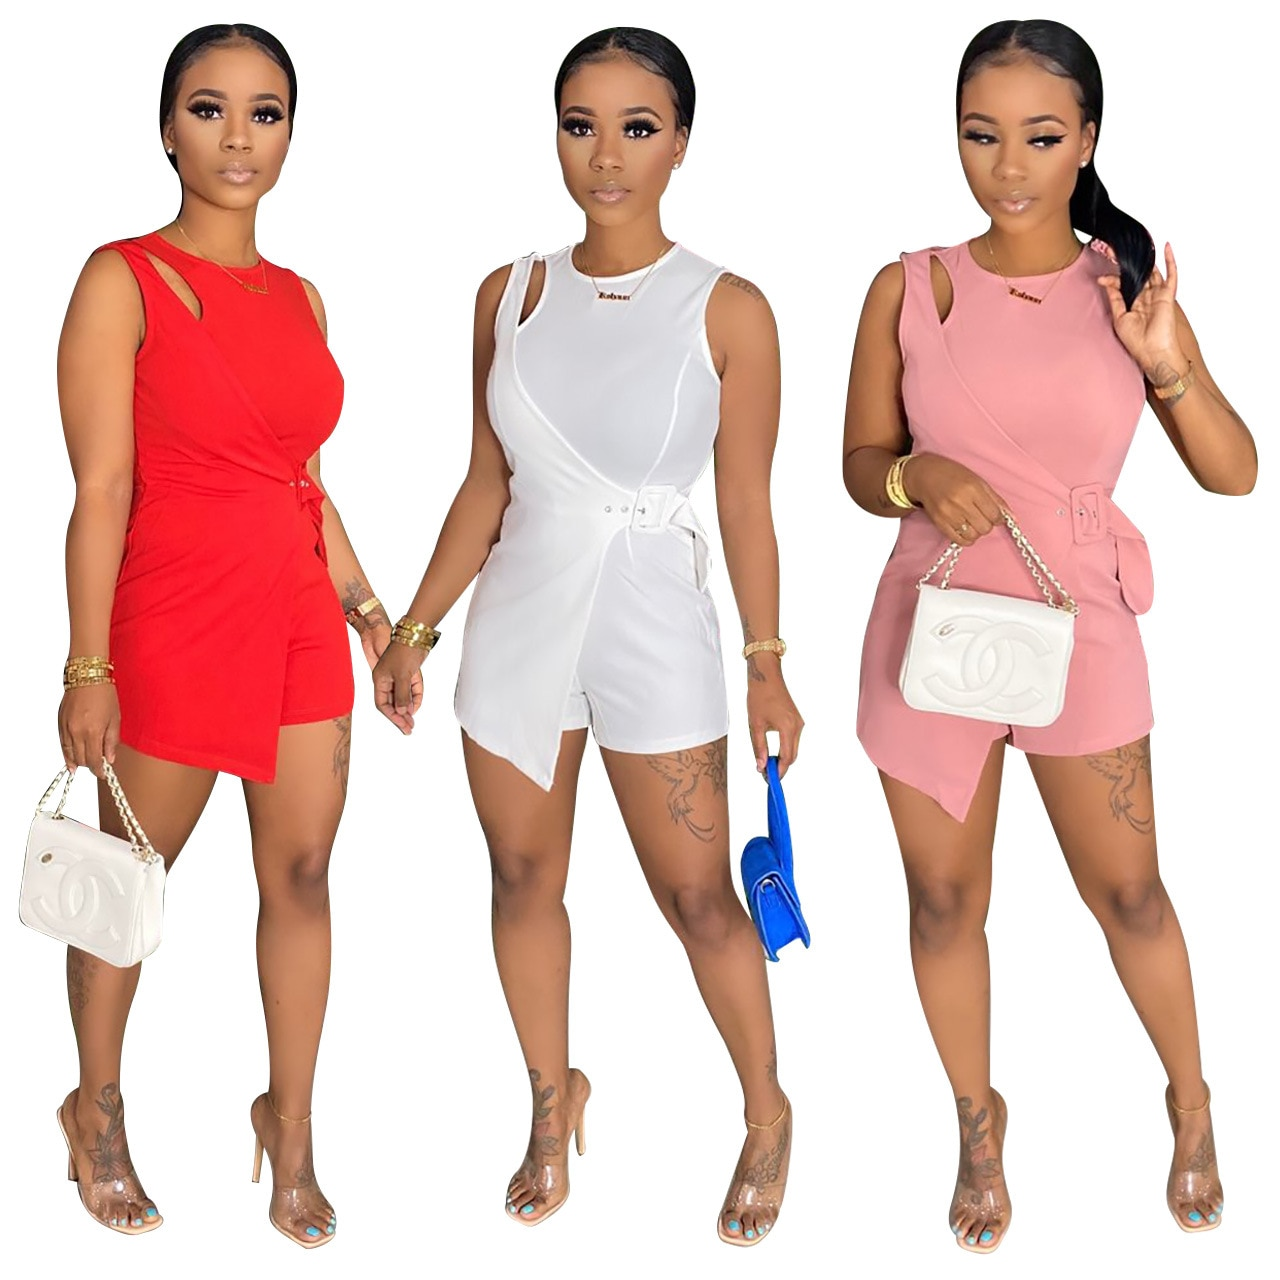 Adogirl Women Hollow Out Solid Color Short Jumpsuit Sleeveless O-Neck Adjustable Buckle Romper Elegant One Piece Bodysuit